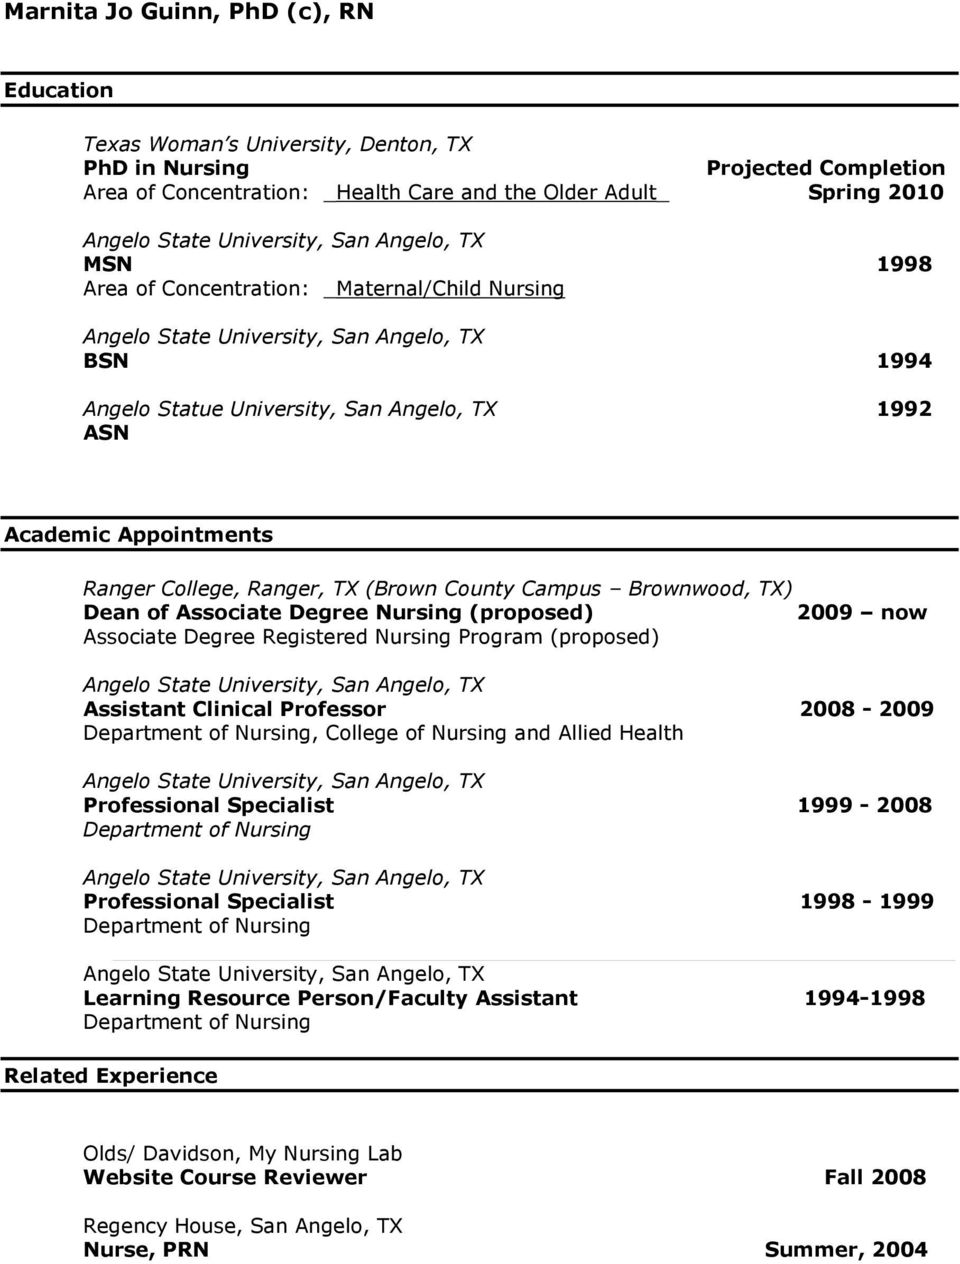 Nursing (proposed) 2009 now Associate Degree Registered Nursing Program (proposed) Assistant Clinical Professor 2008-2009 Department of Nursing, College of Nursing and Allied Health Professional